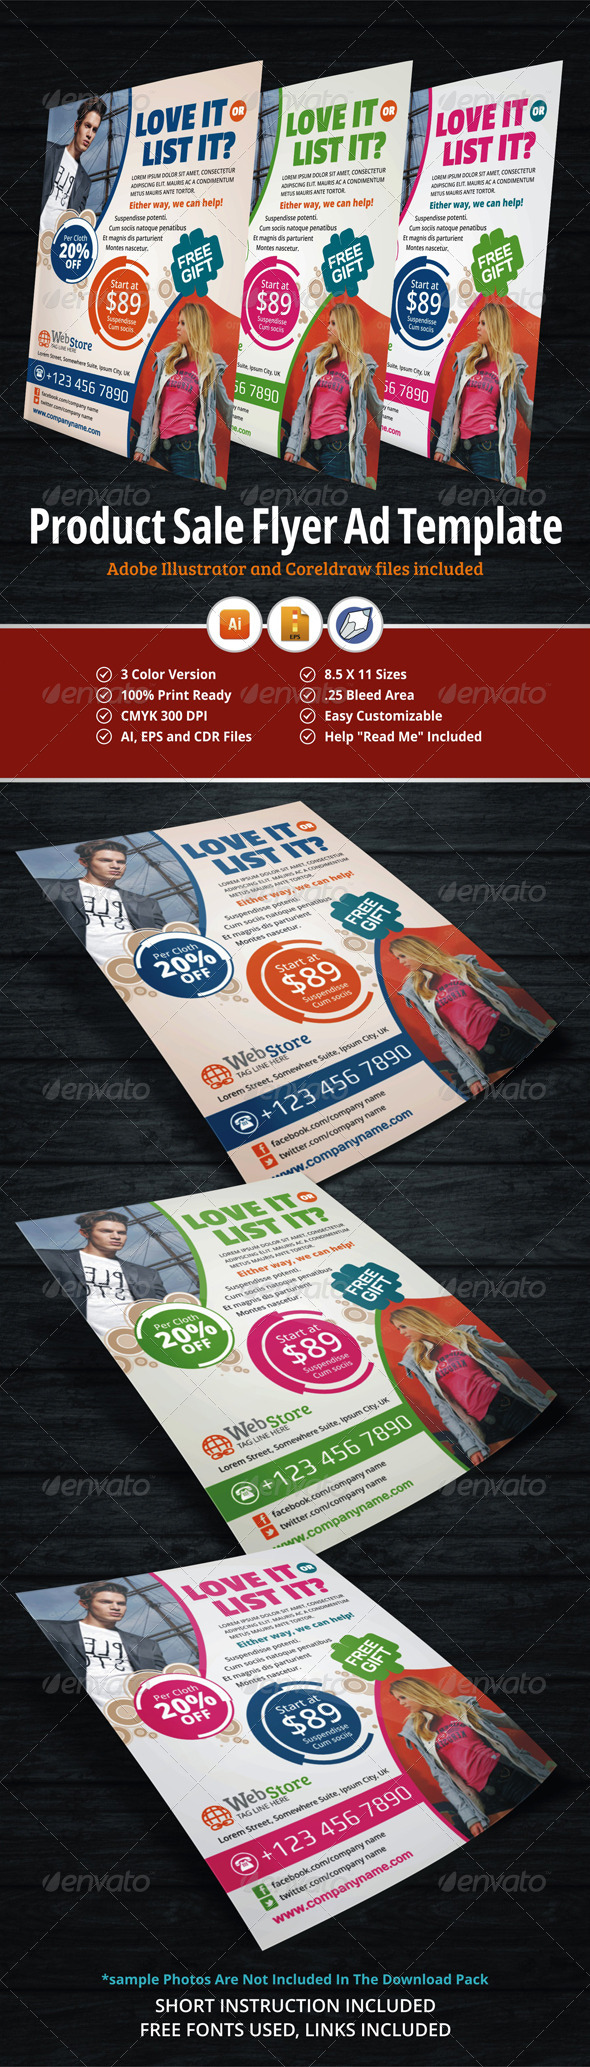 GraphicRiver Product Sale Flyer Ad Template 5736503